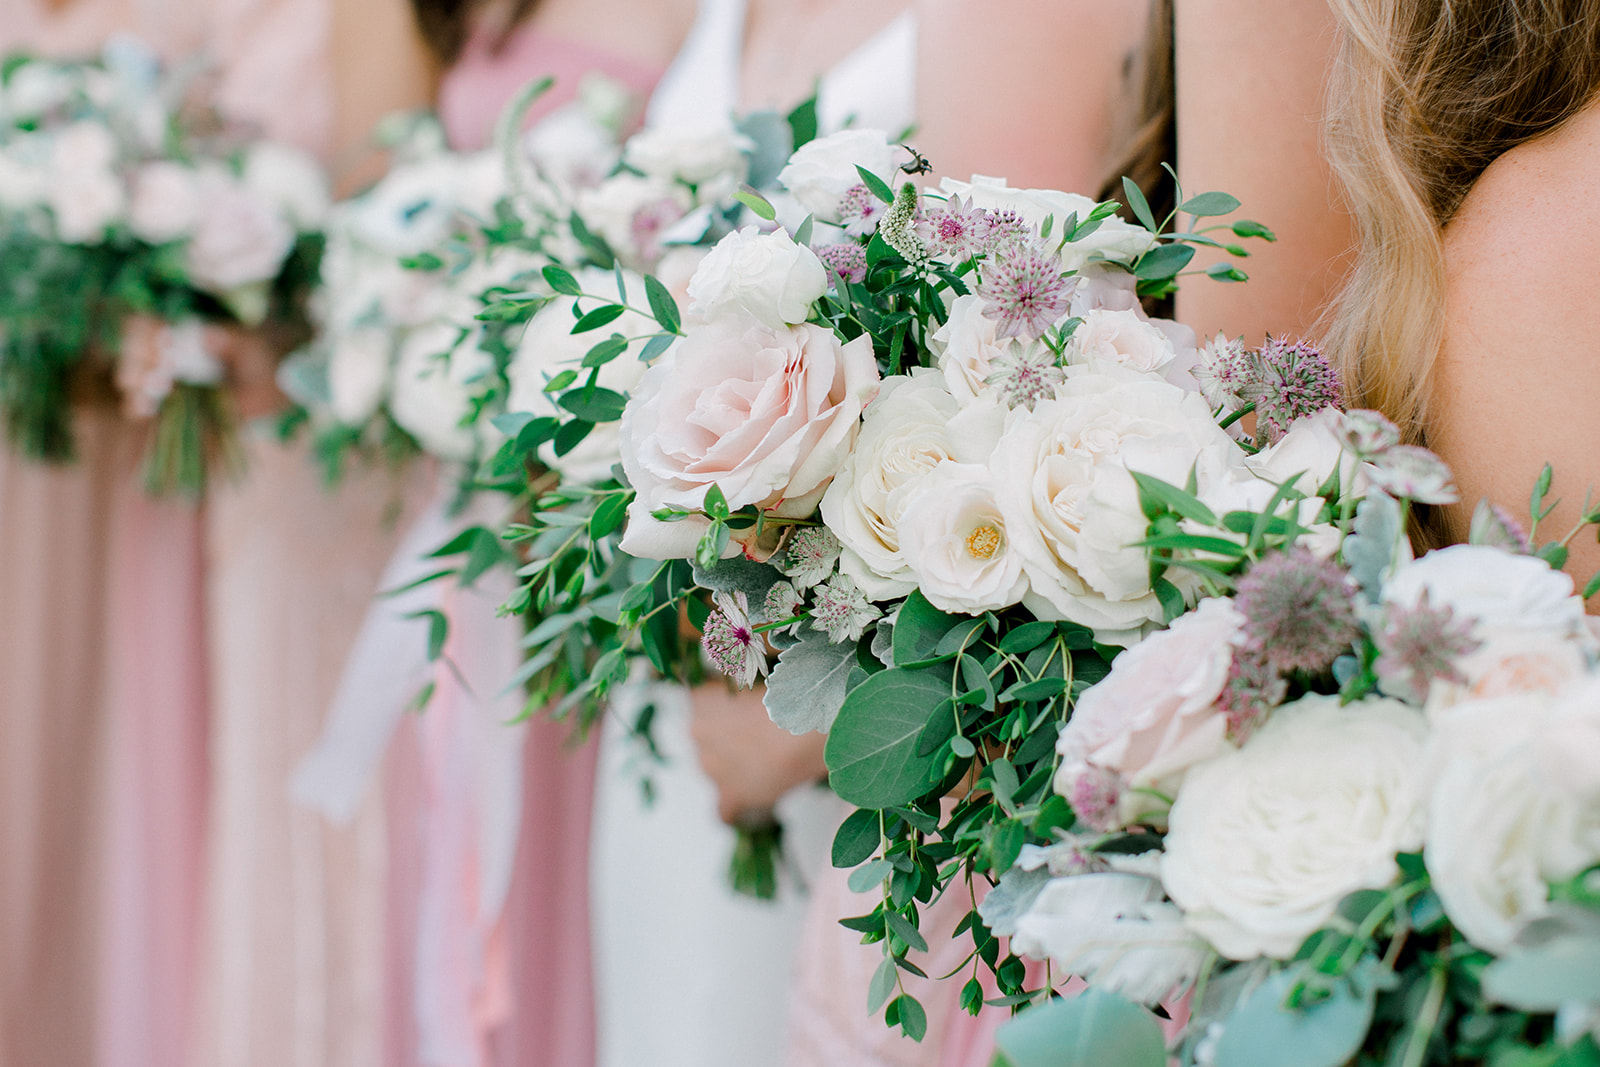 Pink and white wedding bouquets | Nashville Bride Guide